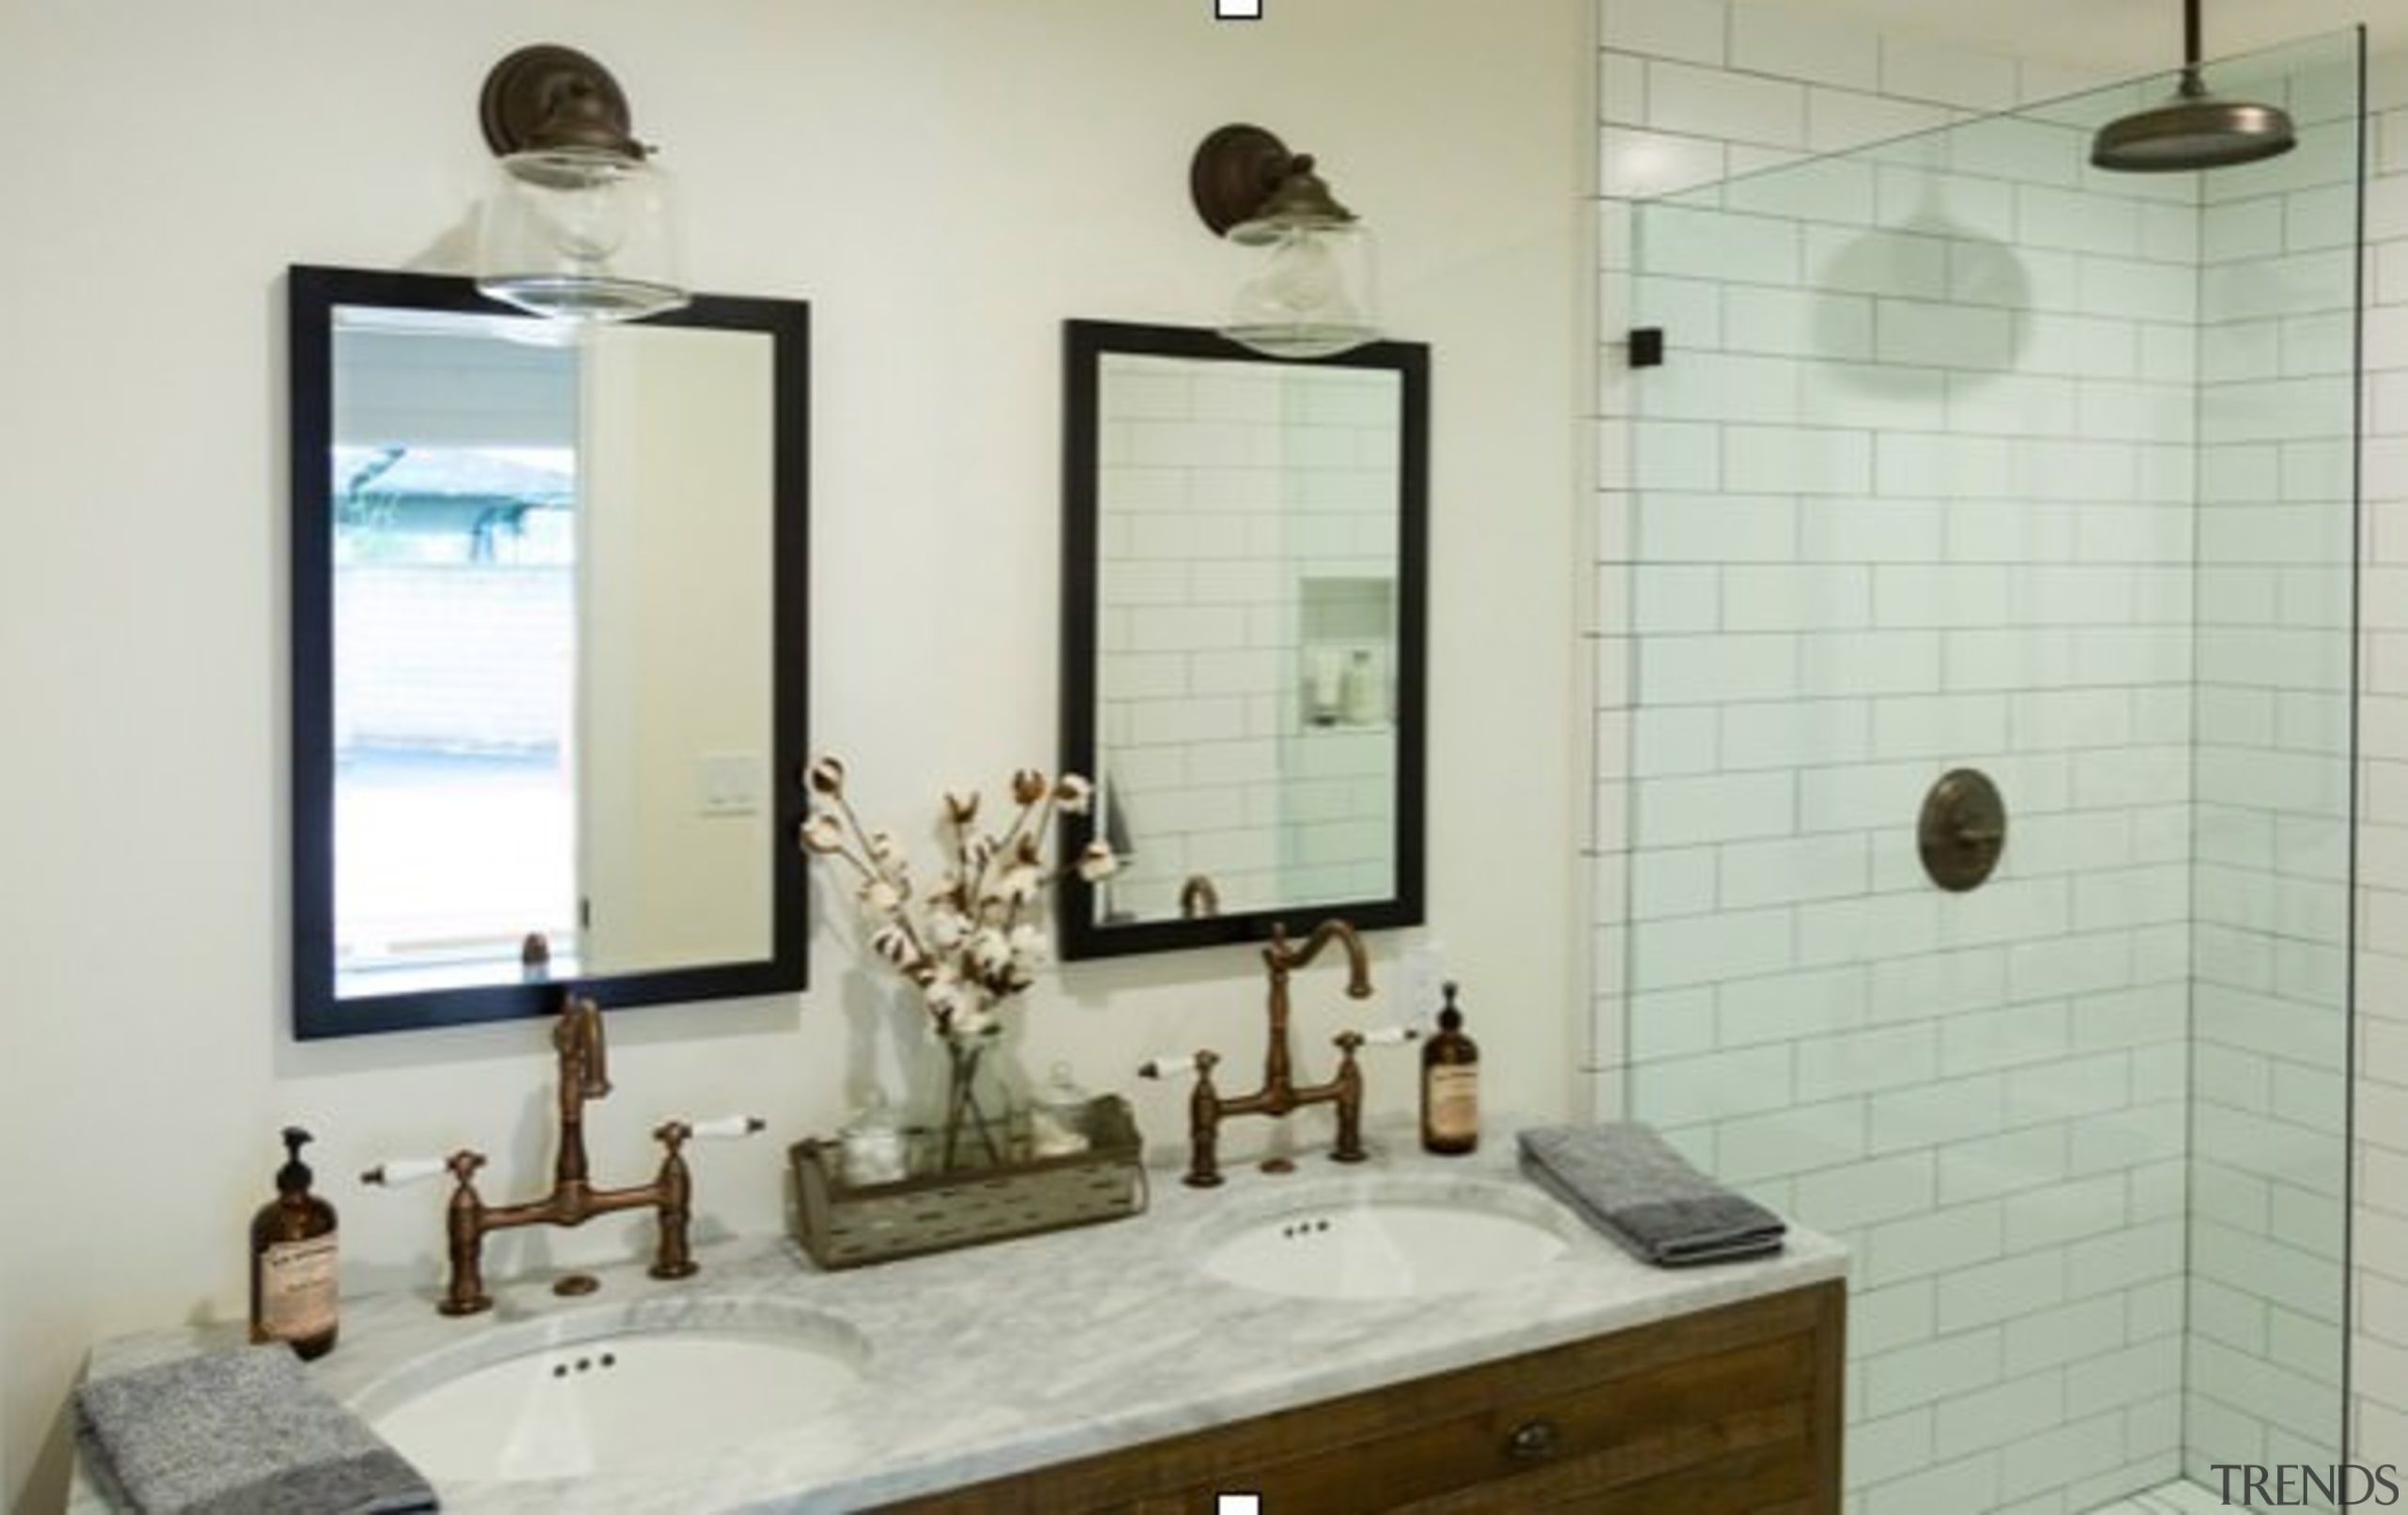 His and hers sinks (and mirrors) make this bathroom, bathroom accessory, home, interior design, plumbing fixture, property, room, sink, gray